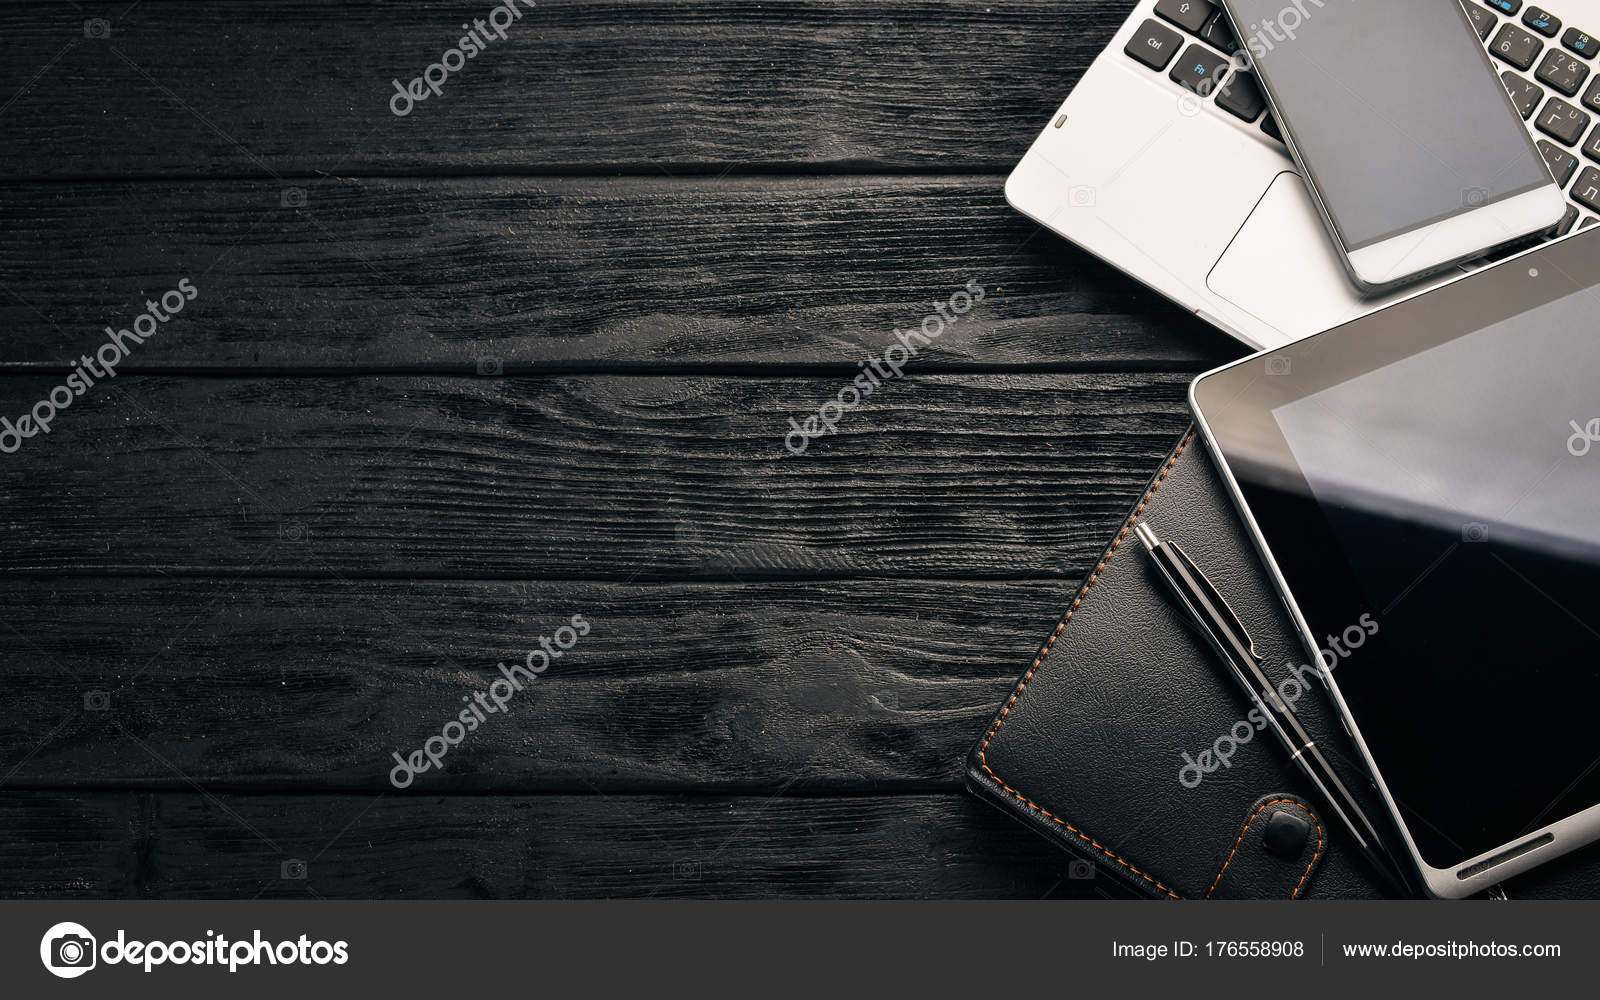 Work Desk Office Laptop Tablet Notebook Pen Pencil Wooden Background